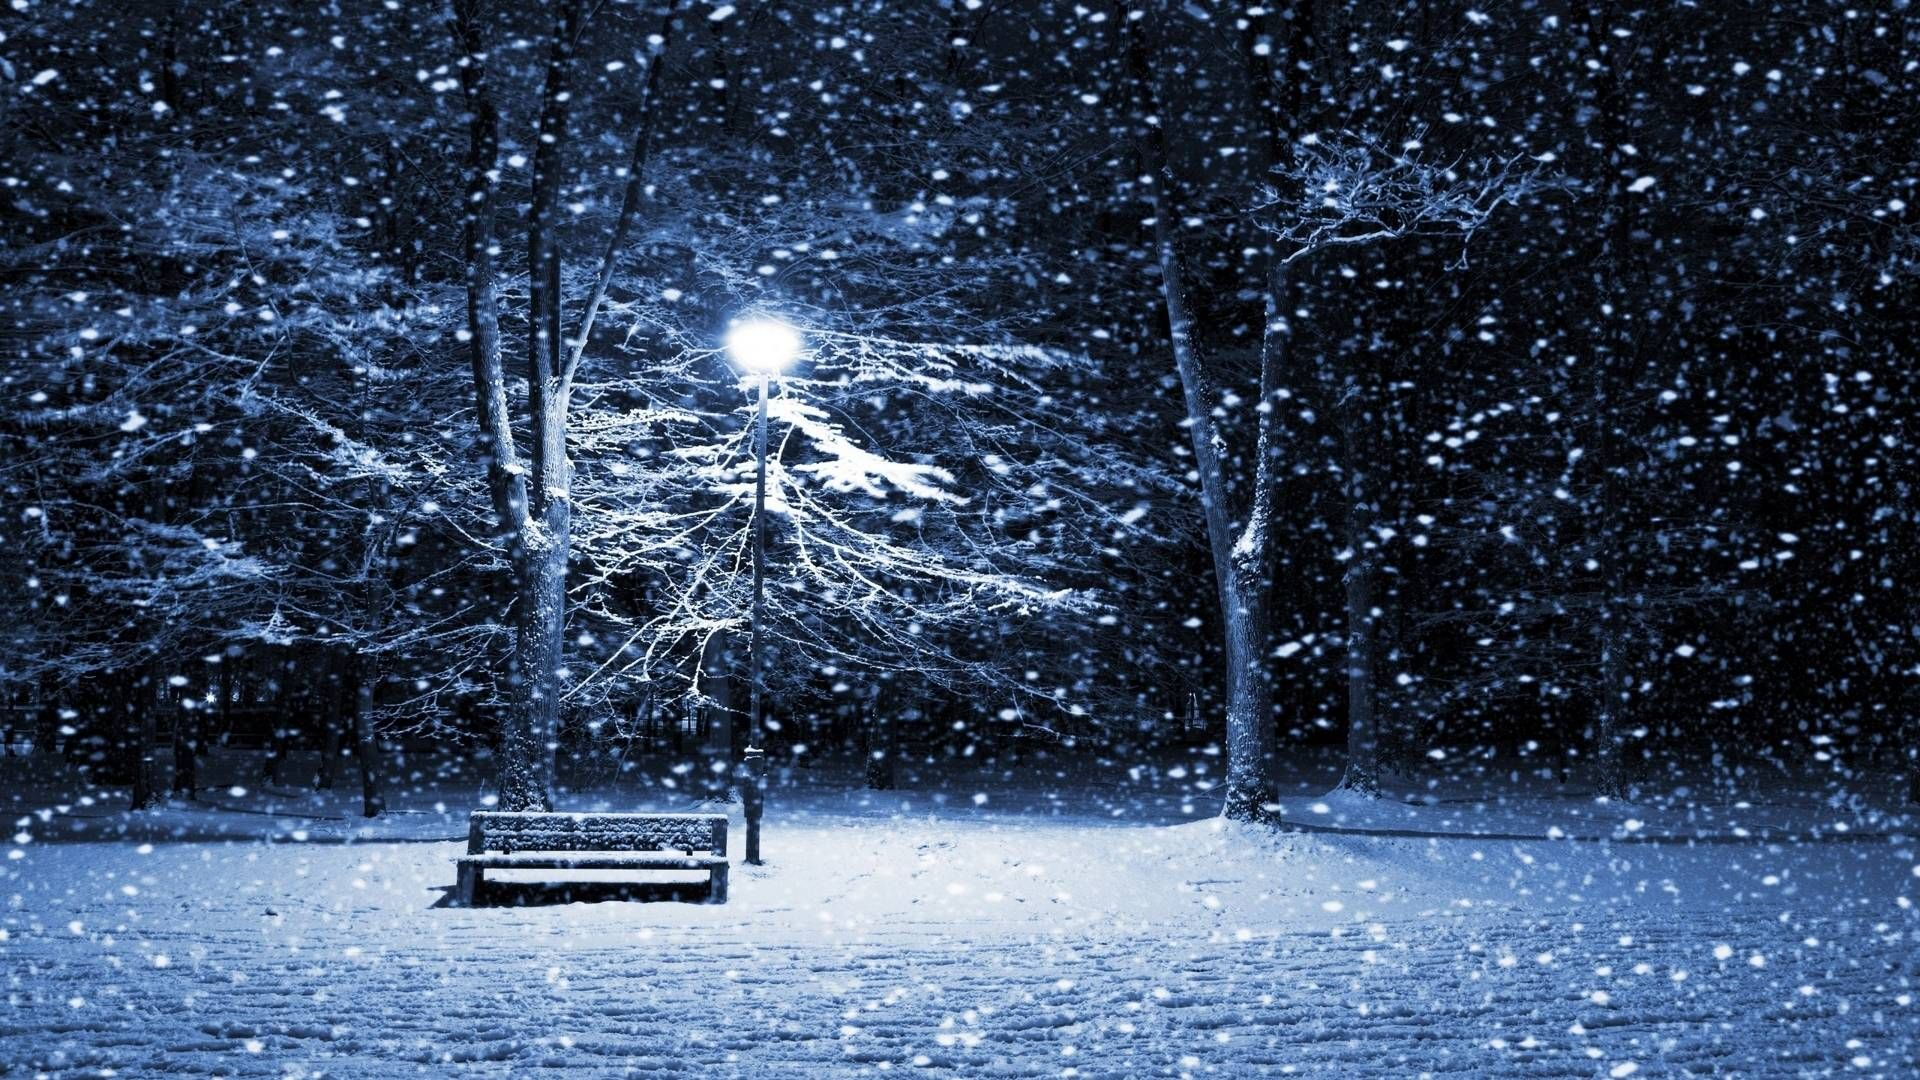 Snowy scene wallpapers wallpaper cave images wallpapers snowy scene wallpapers wallpaper cave voltagebd Image collections